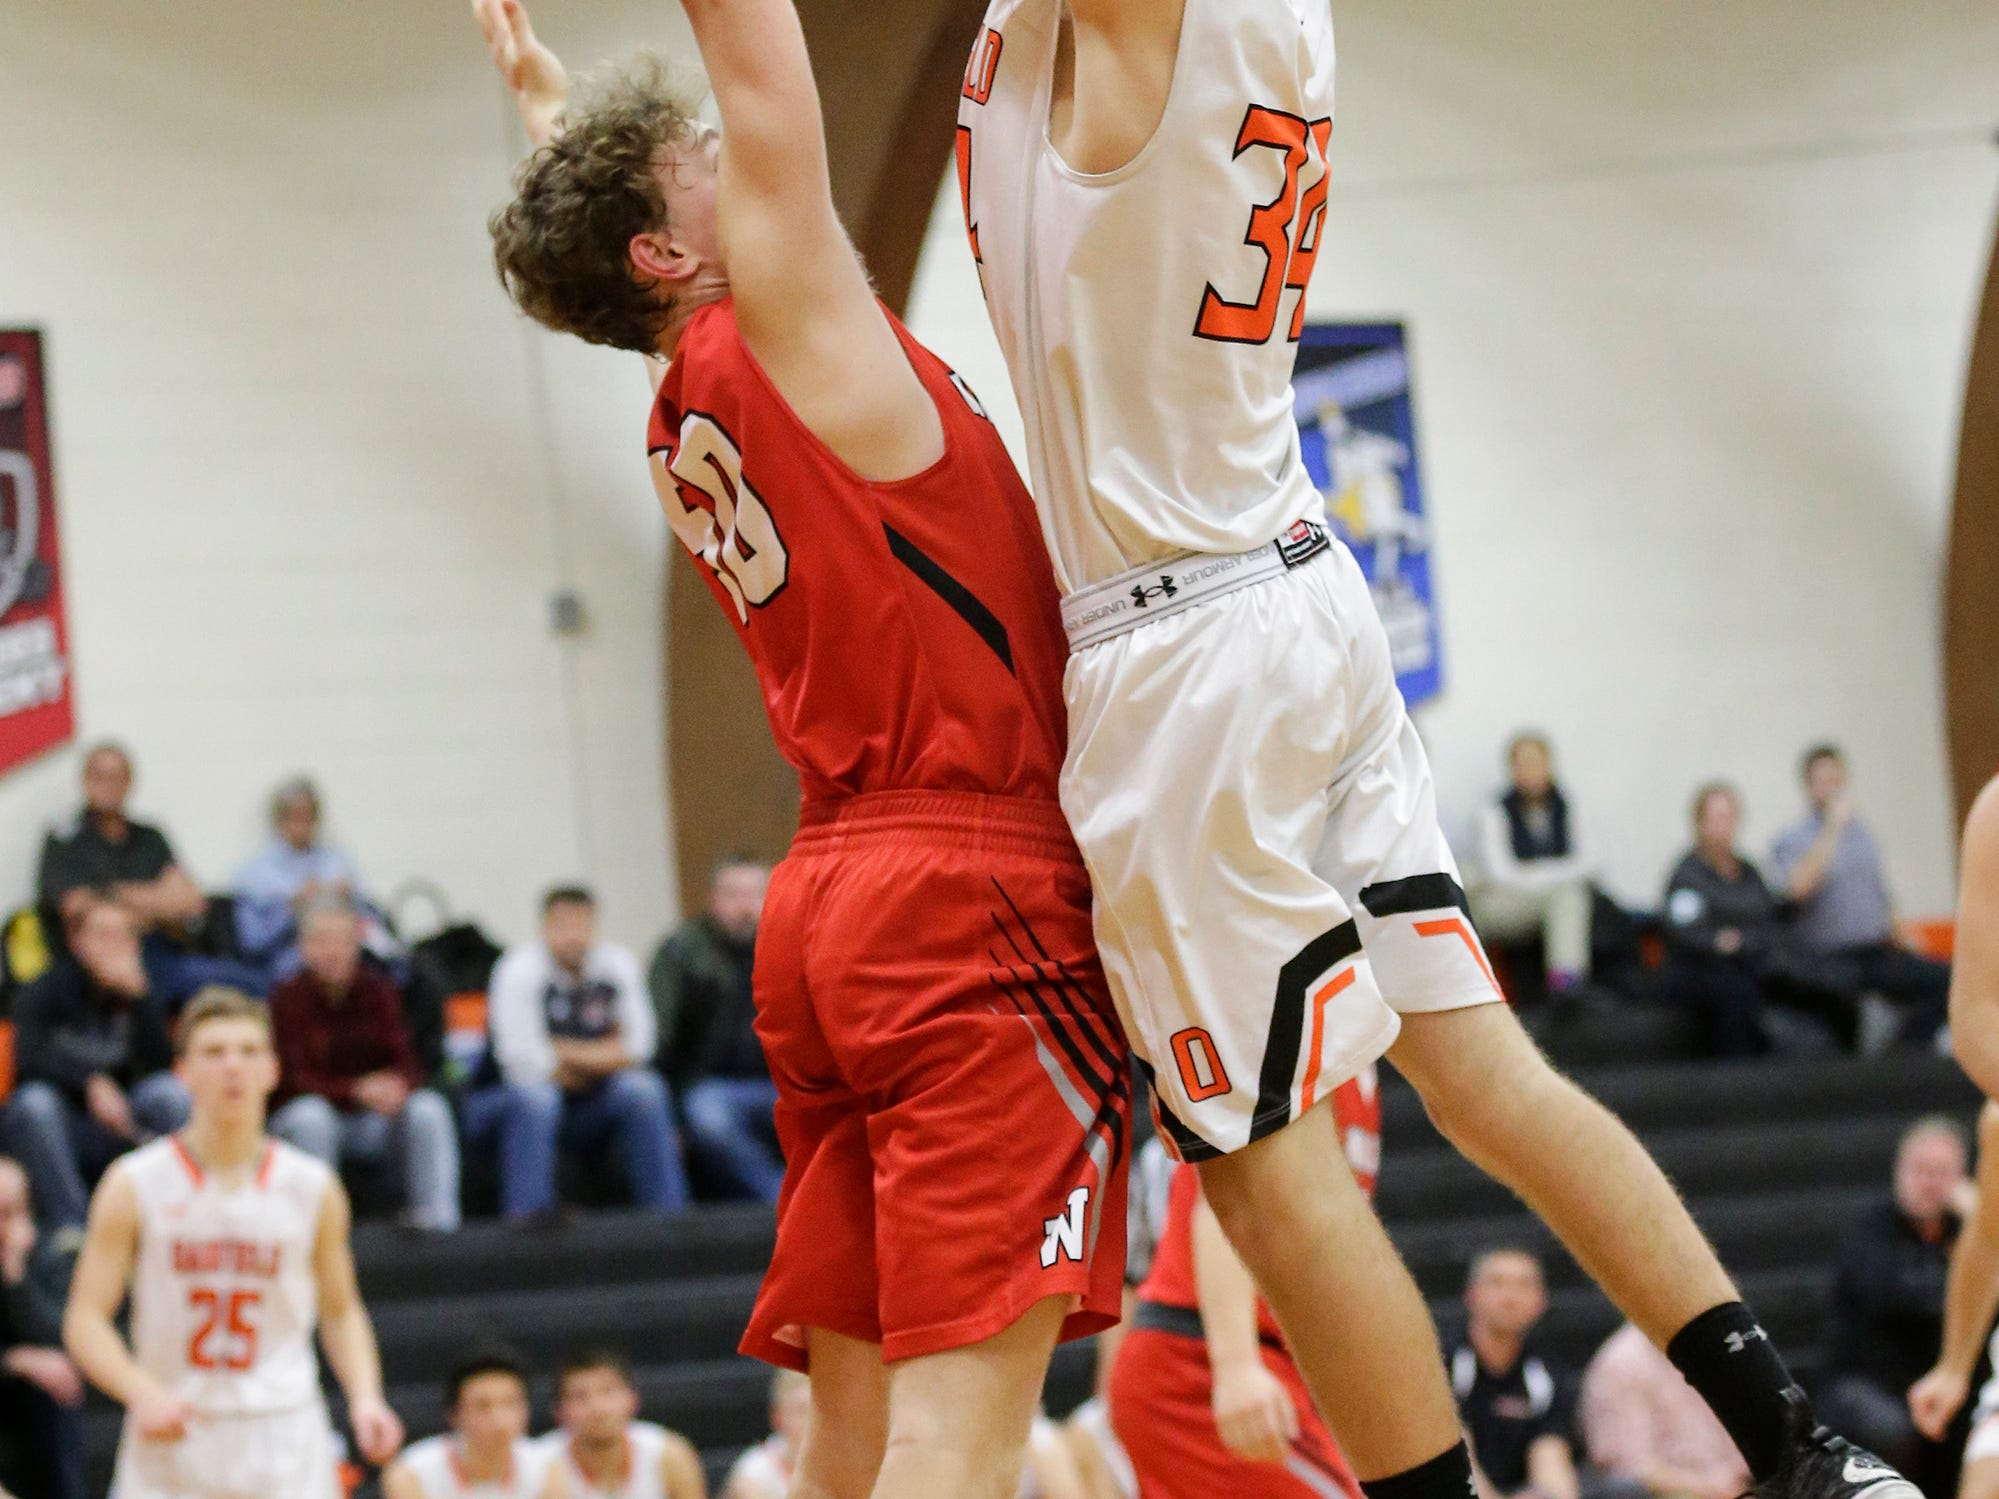 Oakfield High School boys basketball's Jaxson Hofman attemts a shot against Wayland Academy's Adam Rubinchik January 11, 2019 during their game in Oakfield. Oakfield won the game 56-48. Doug Raflik/USA TODAY NETWORK-Wisconsin